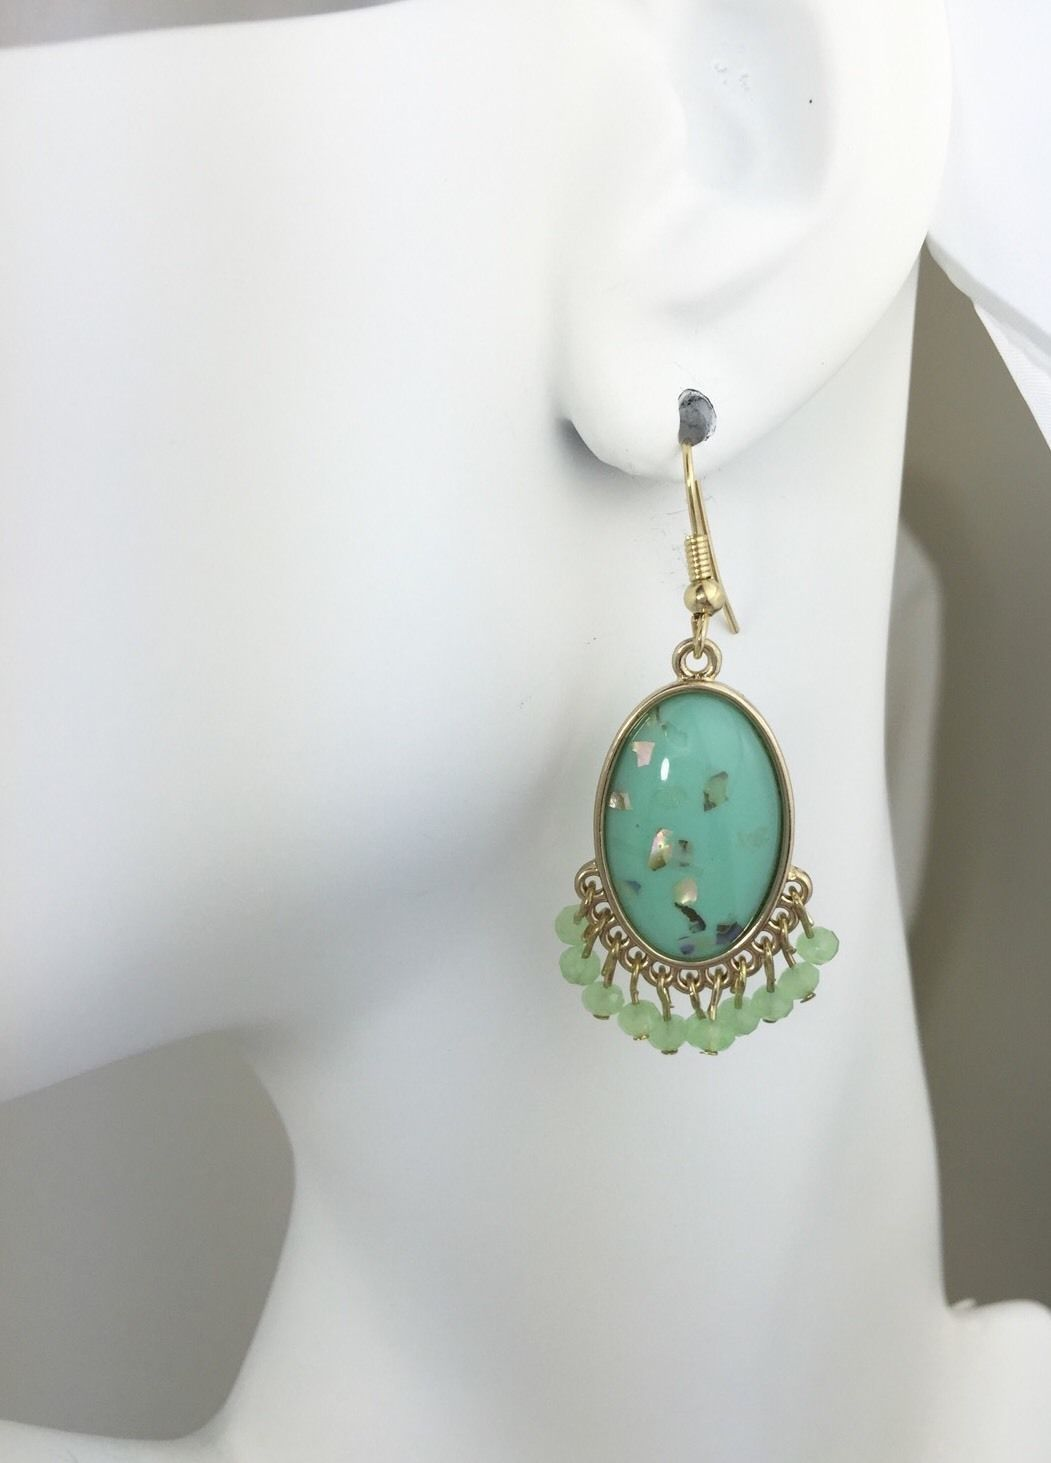 Primary image for Mint Green Earrings, Beaded Earrings,  Fringe Dangle Earrings Gold Tone